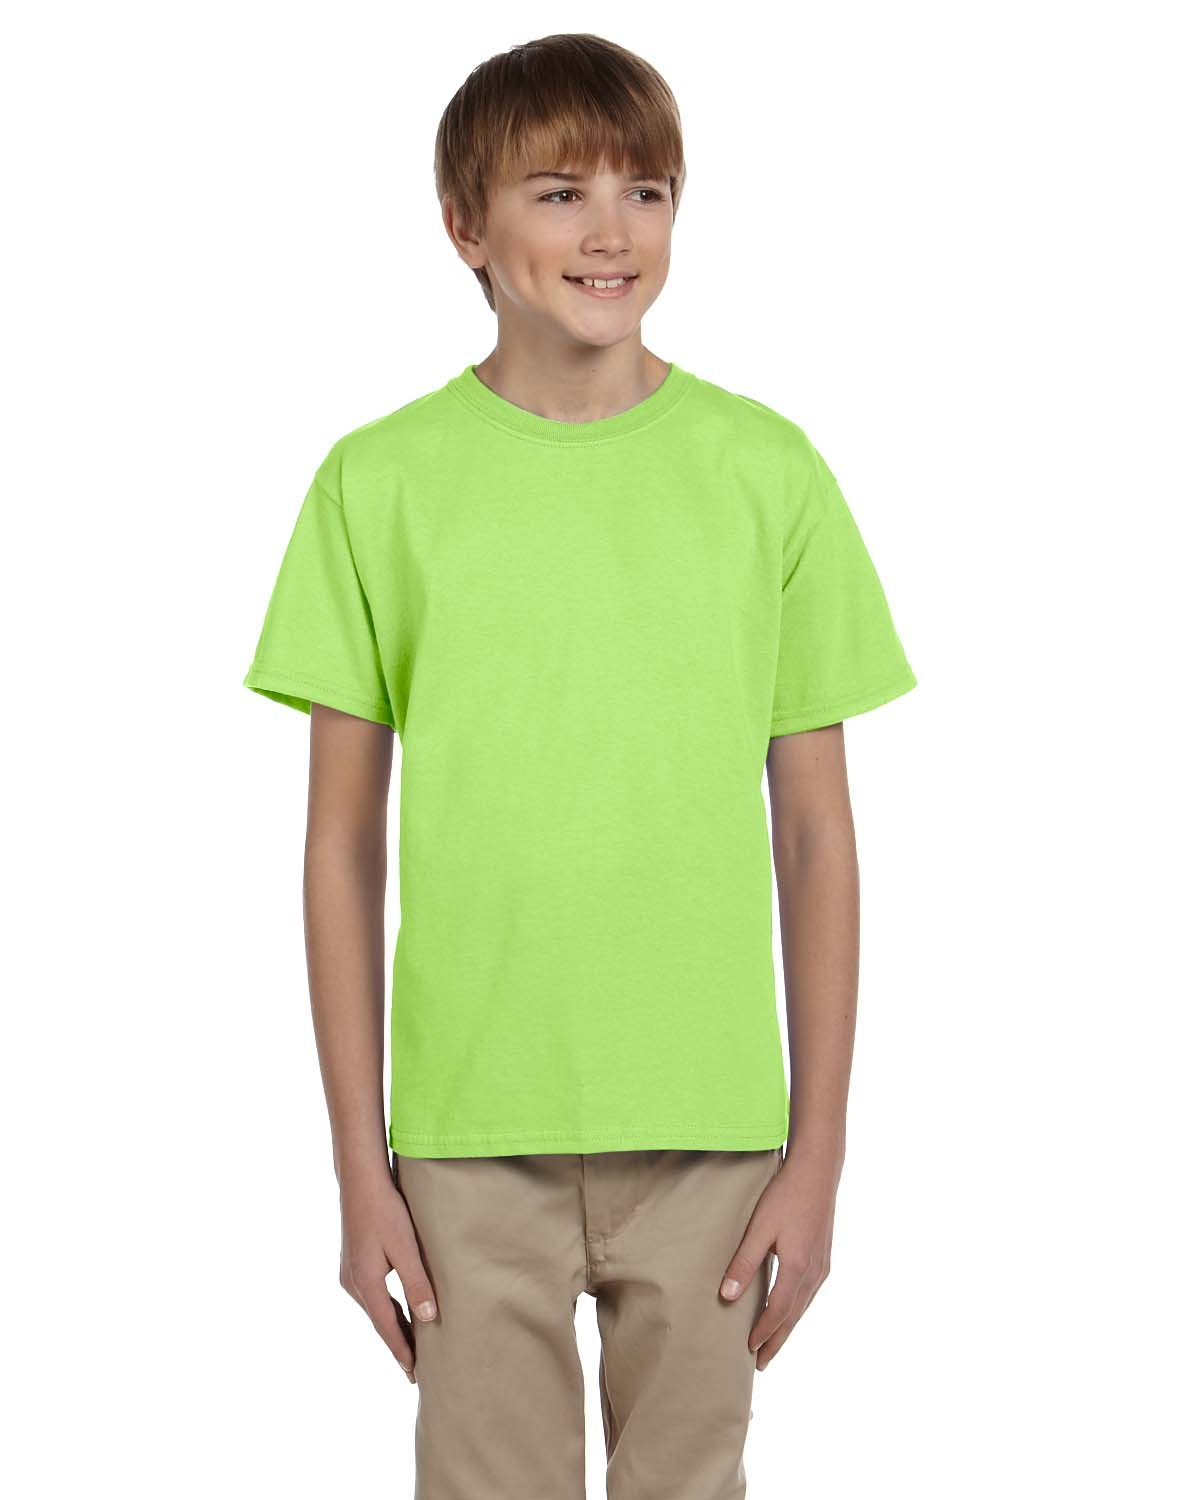 3931B Fruit of the Loom NEON GREEN